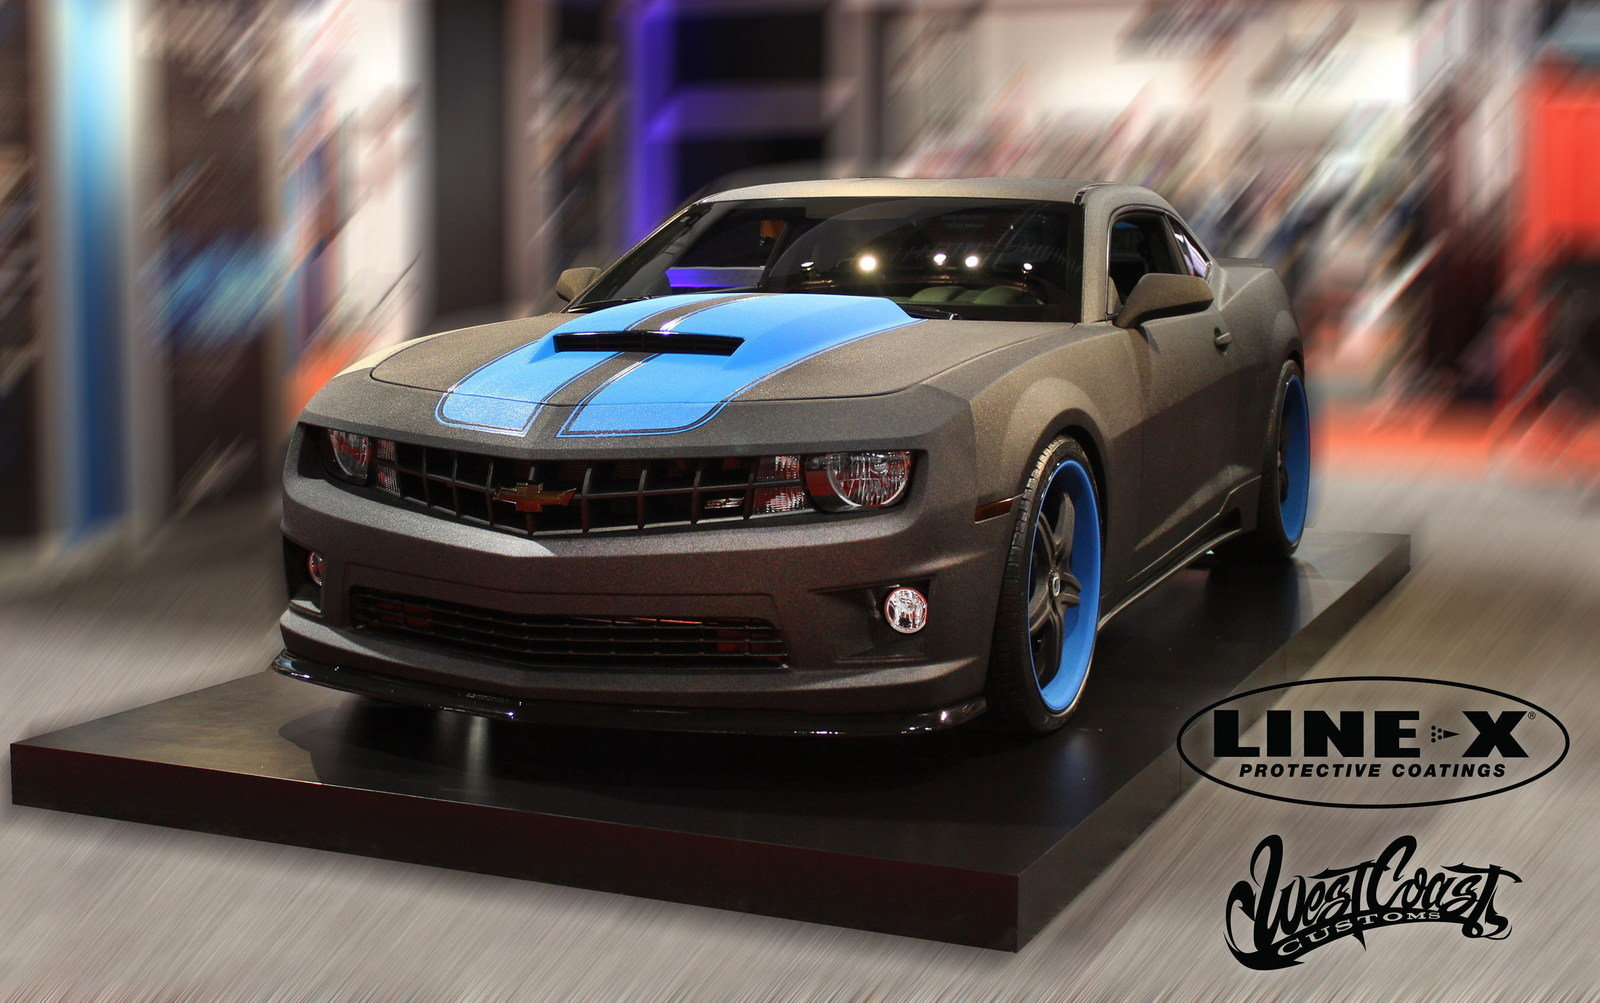 Www Hummer Limousine Car Wallpapers Com 2013 Chevrolet Camaro Line X By West Coast Customs